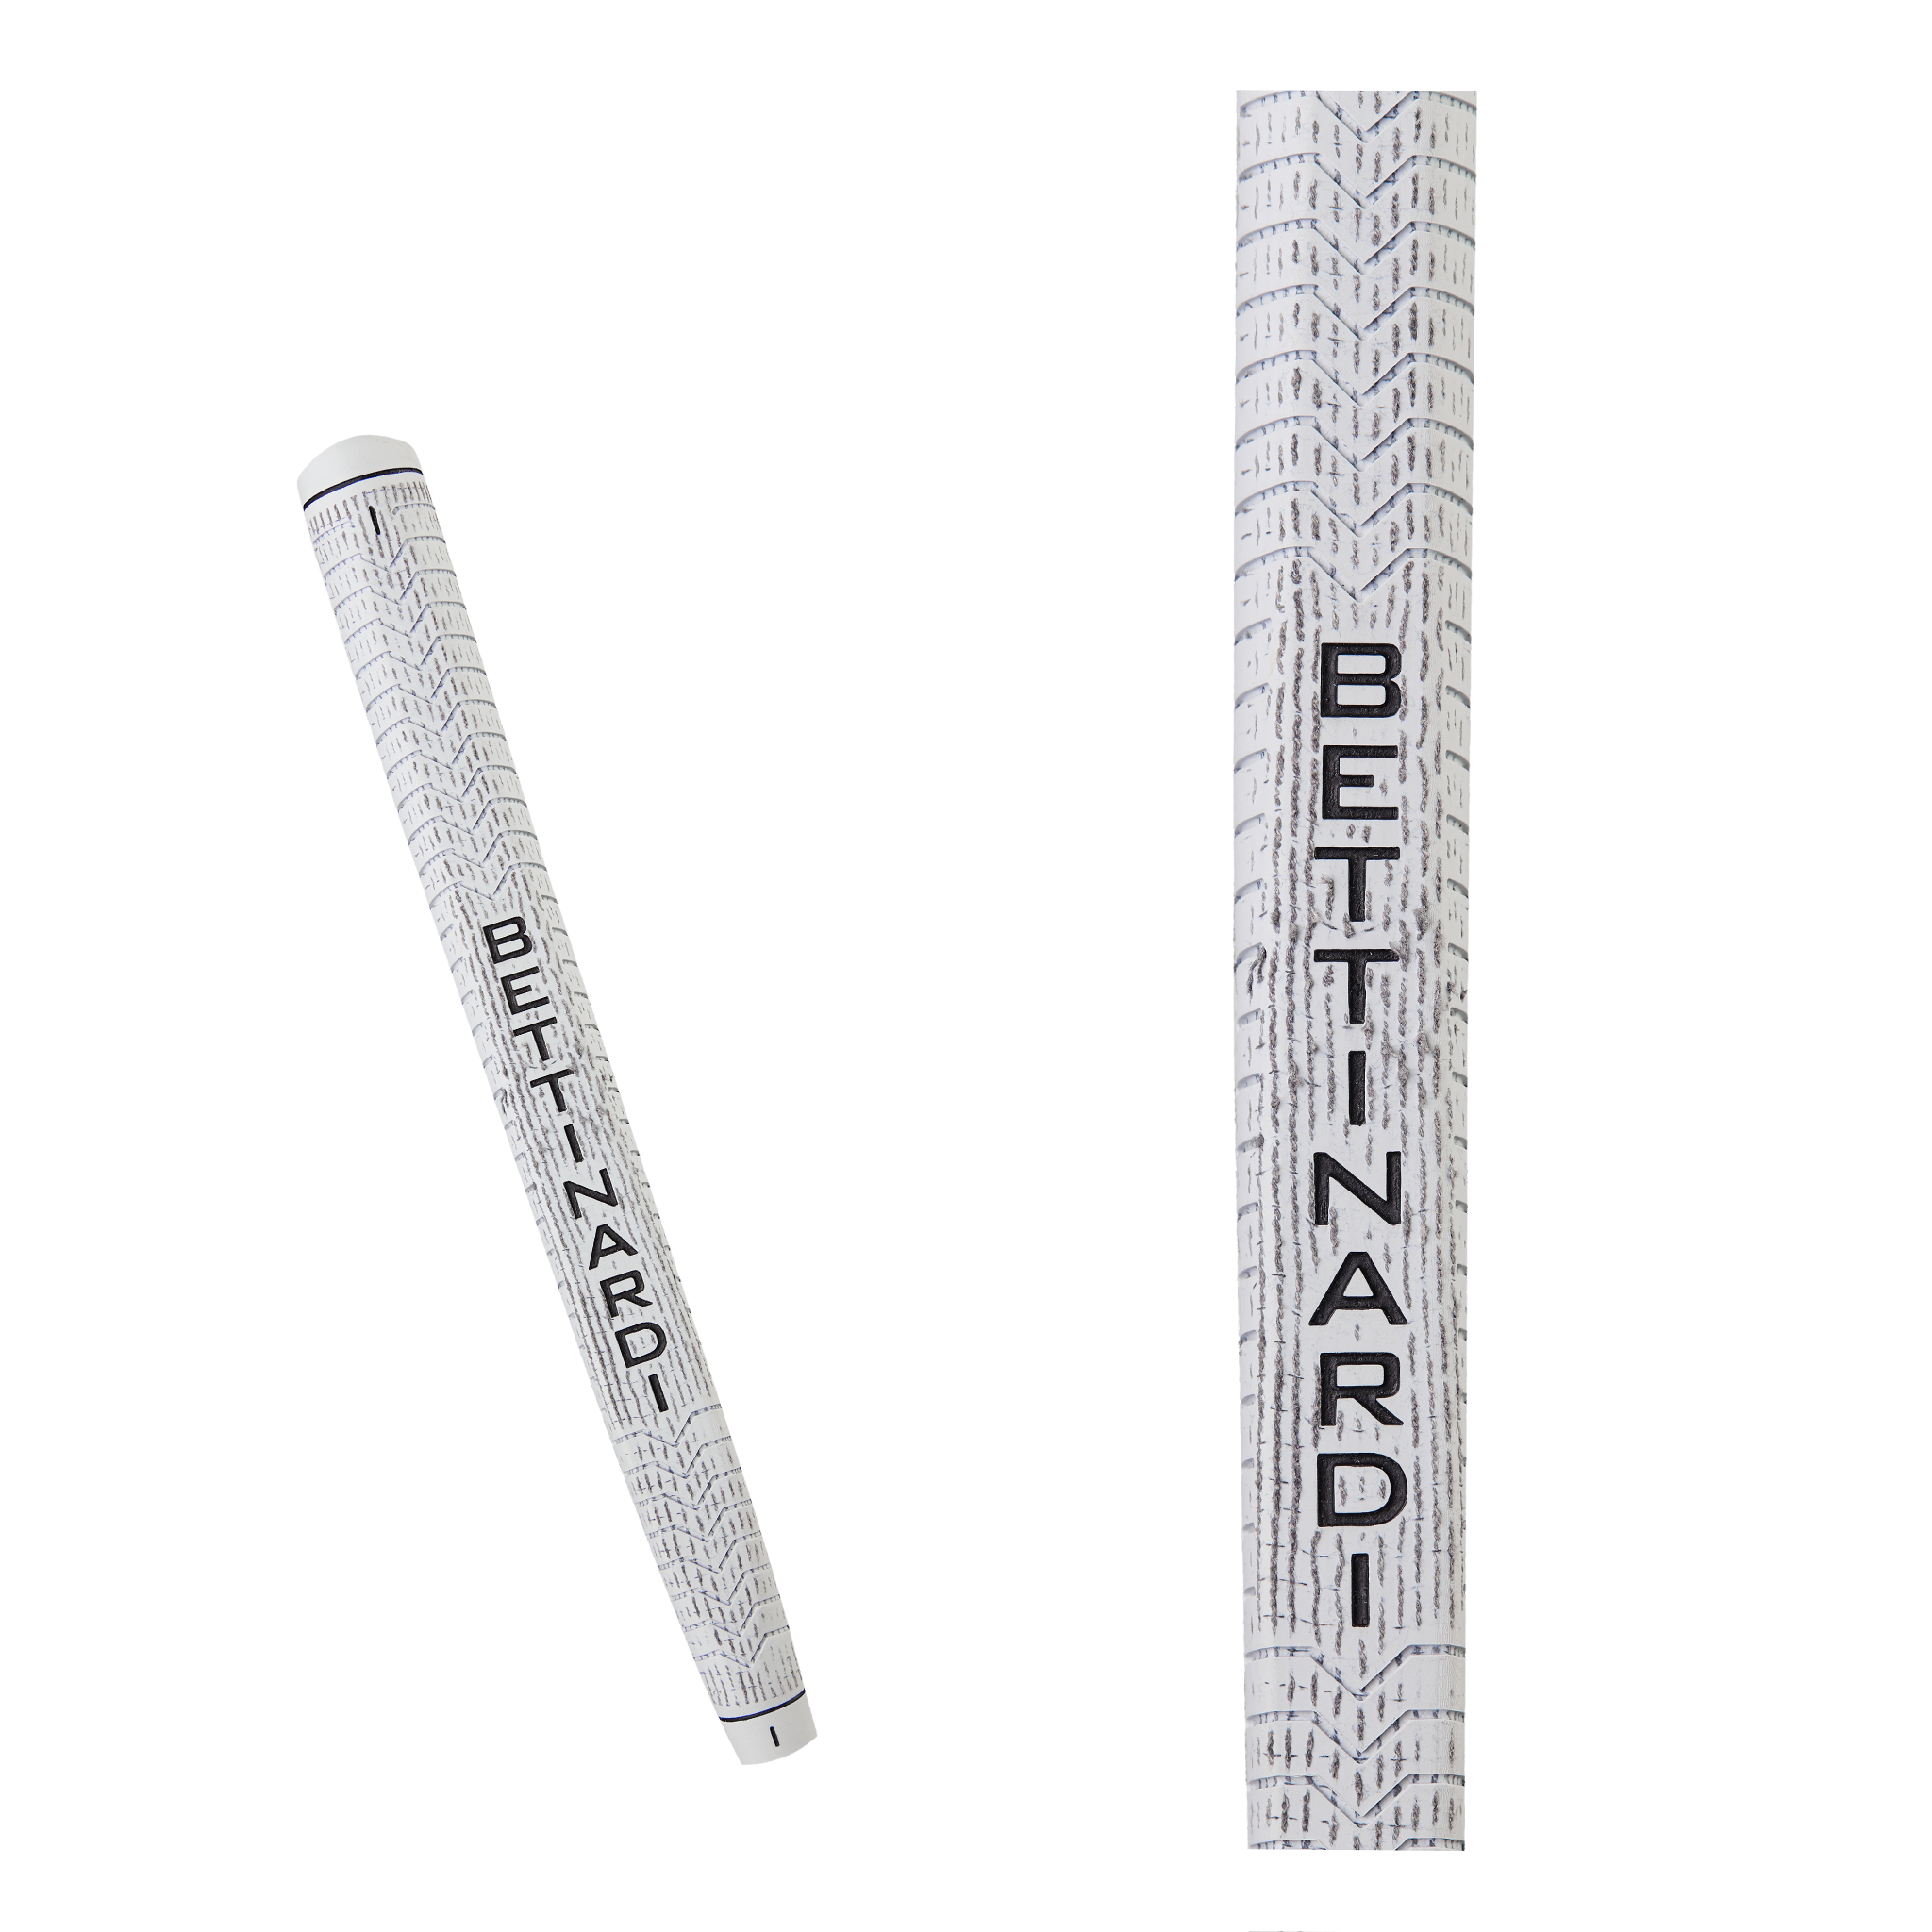 Light Grey Bettinardi Deep Etched Putter Grip (Standard)